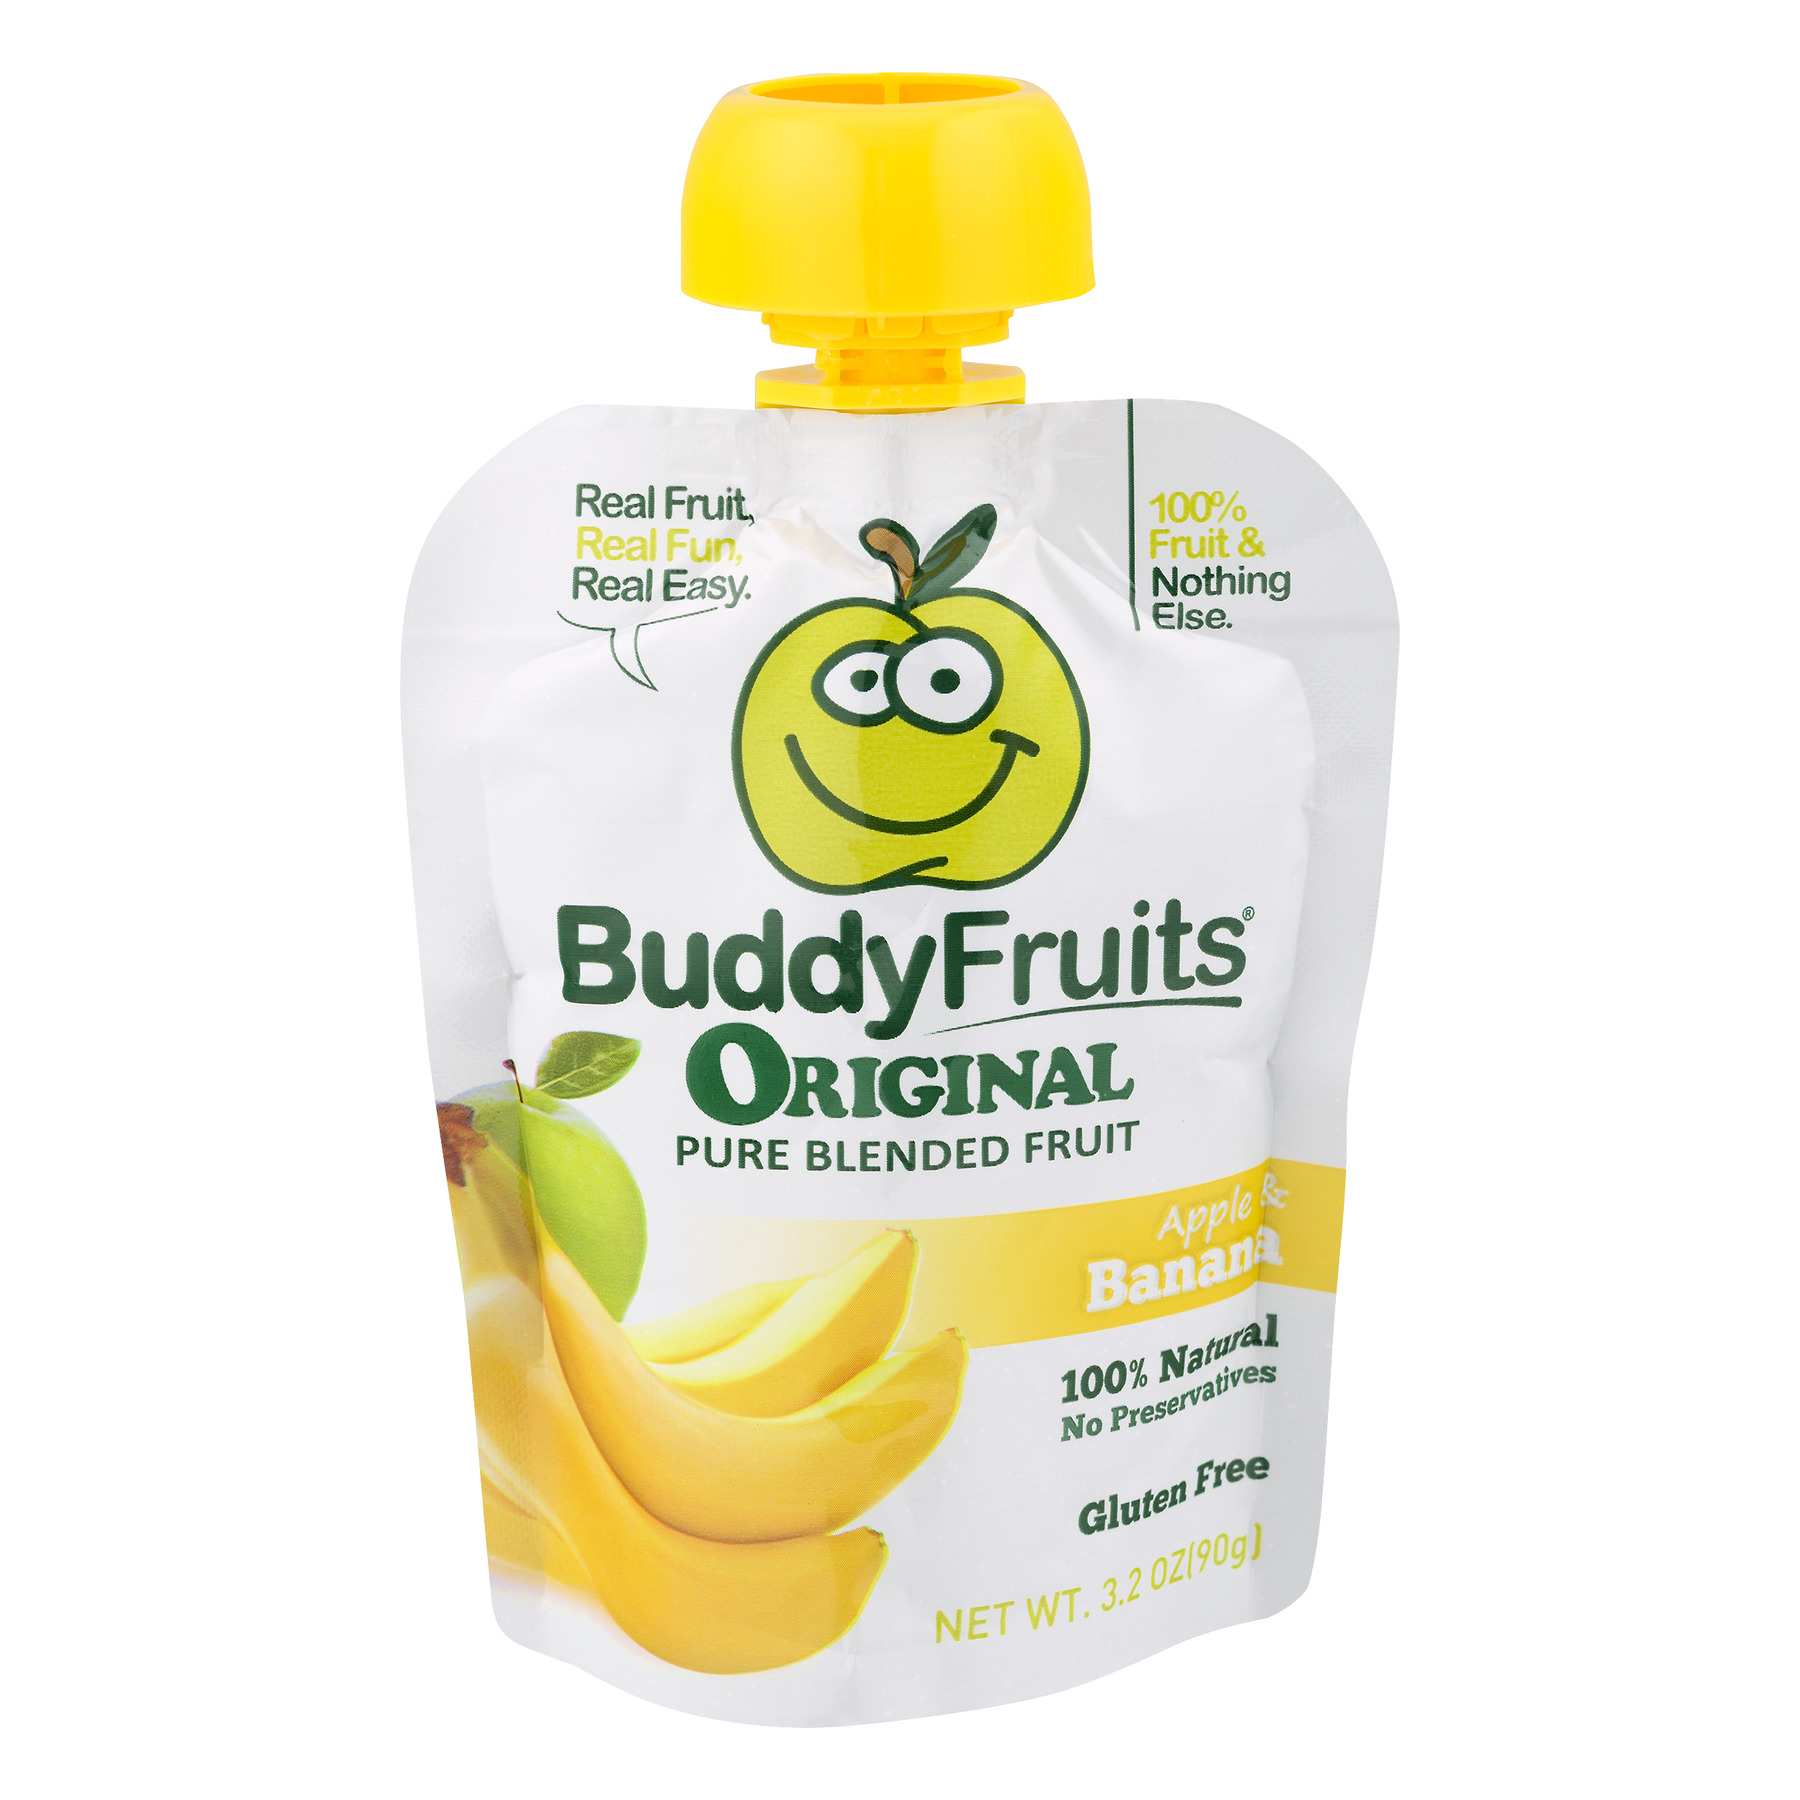 Ouhlala Gourmet Buddy Fruits Original Pure Blended Fruit, 3.2 oz